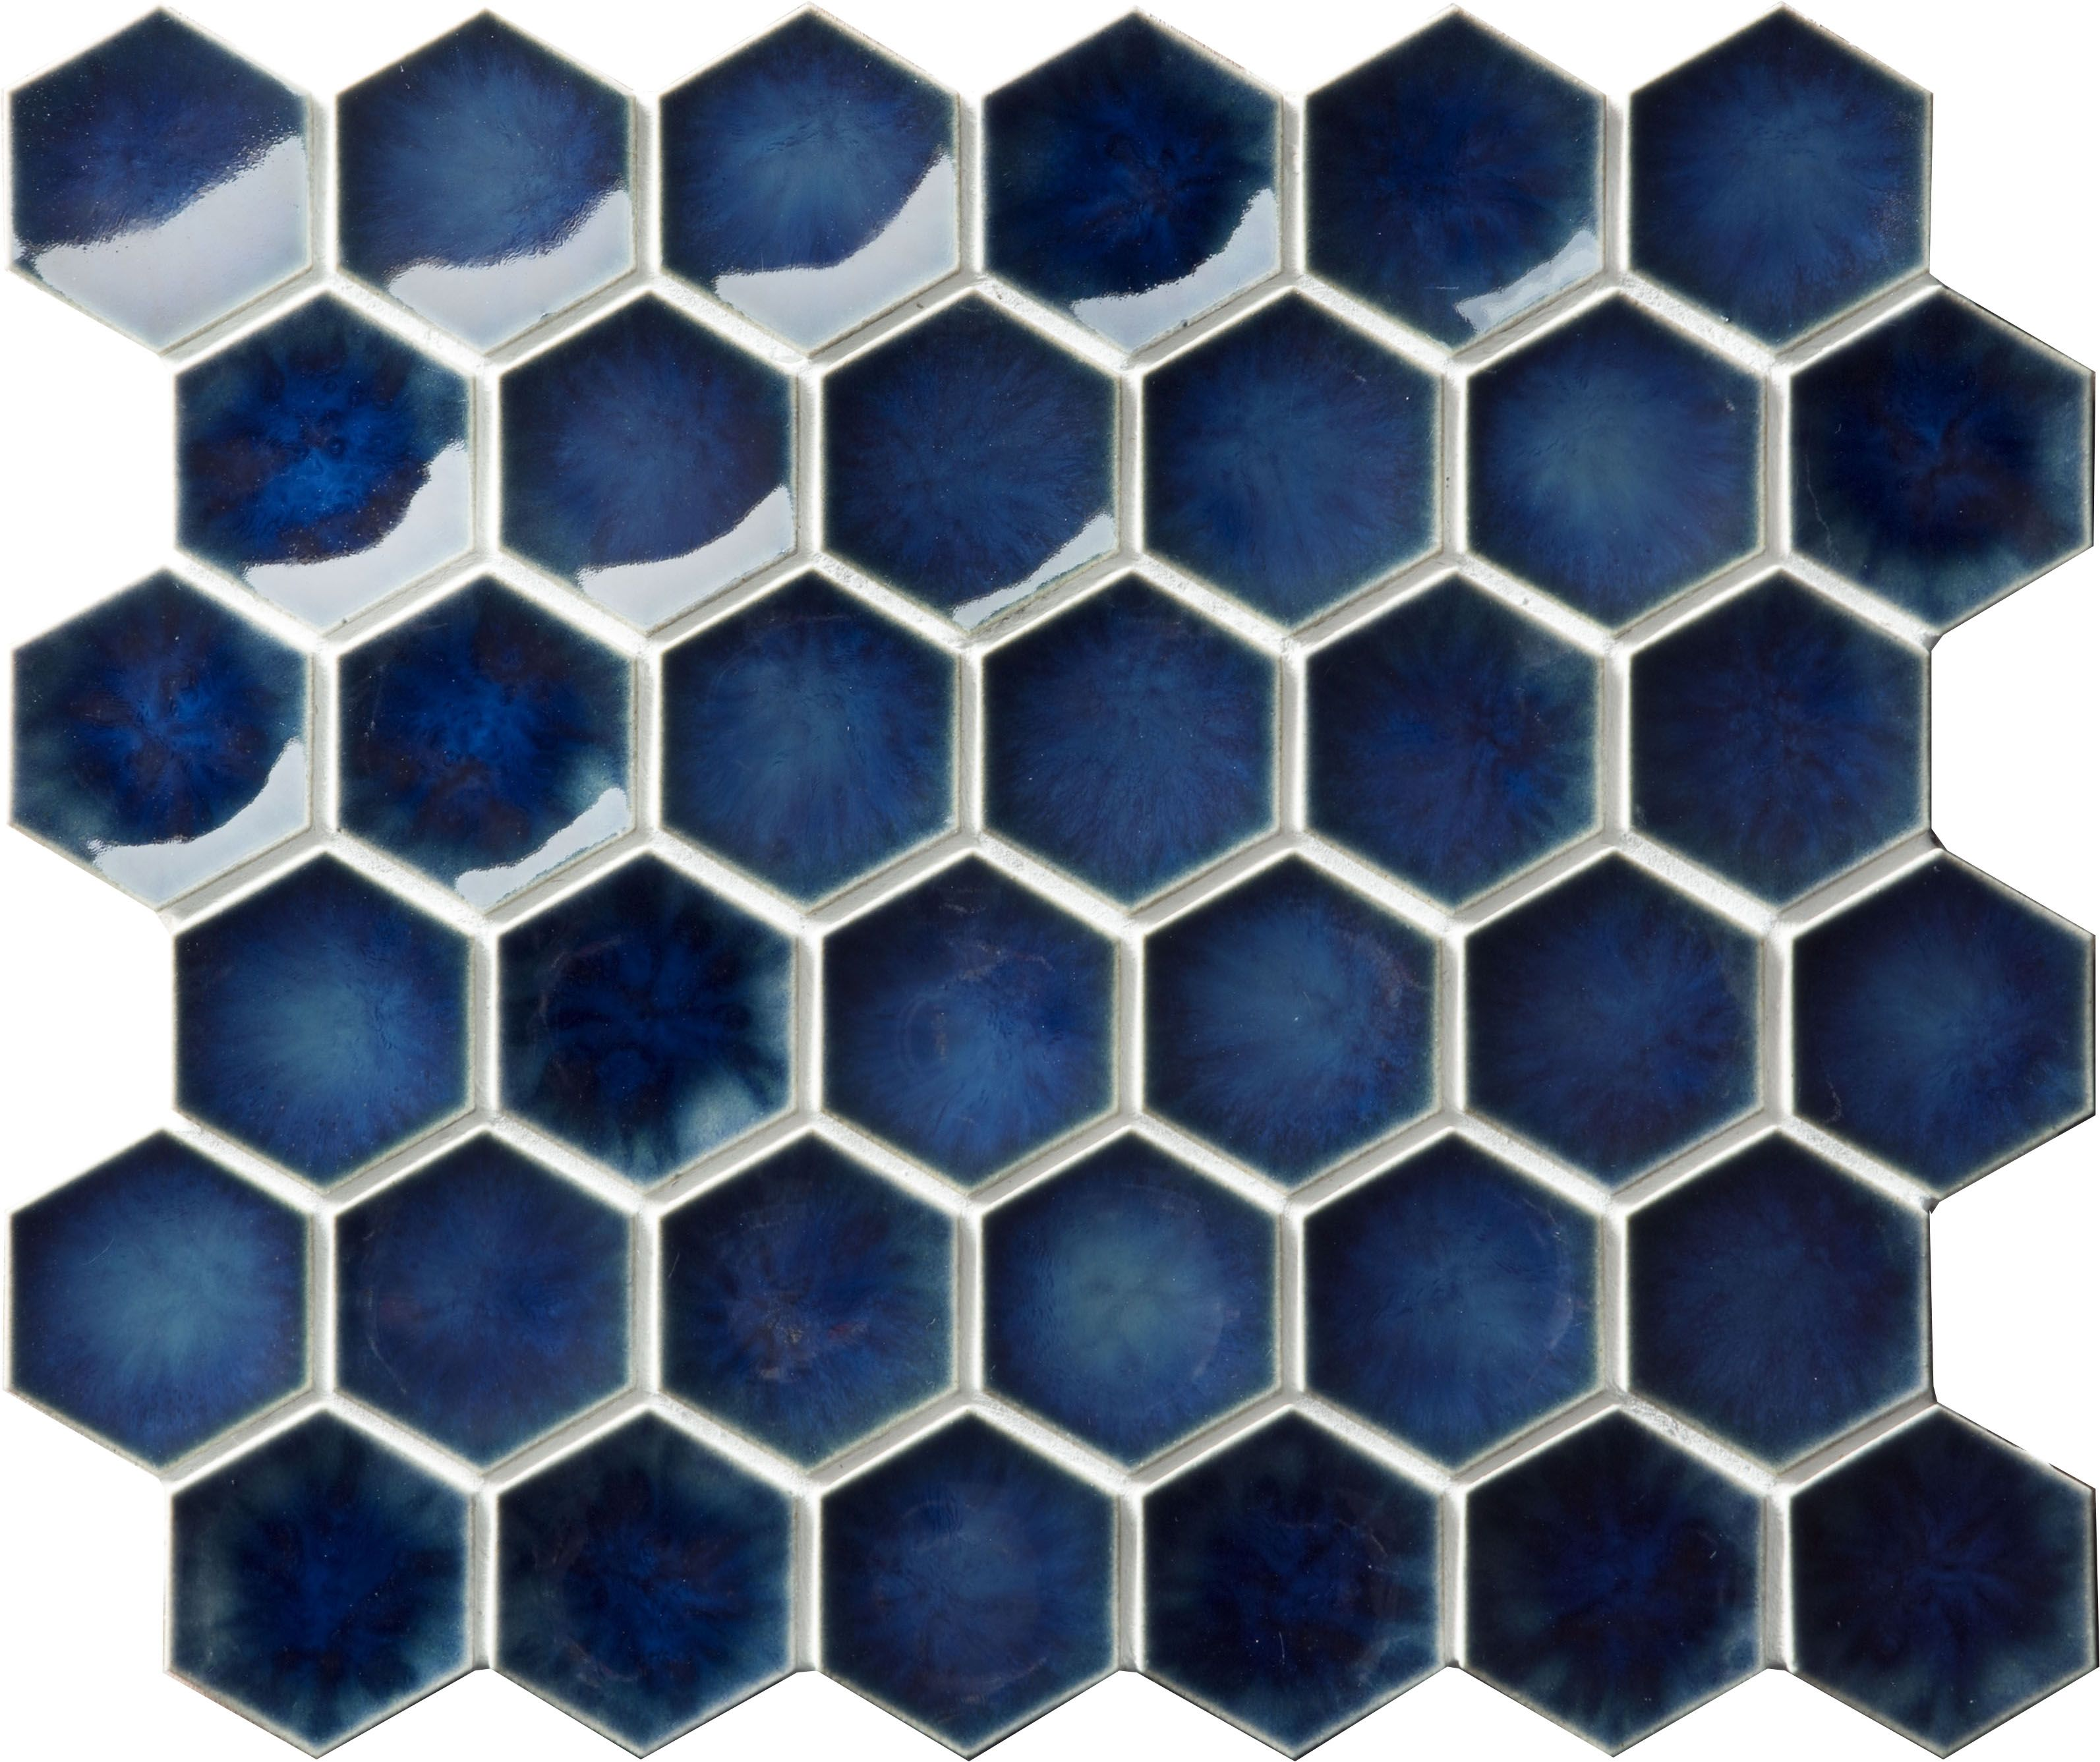 Setto 2 Godai Concave Hex In Gloss Blue Japanese Tile Mosaic